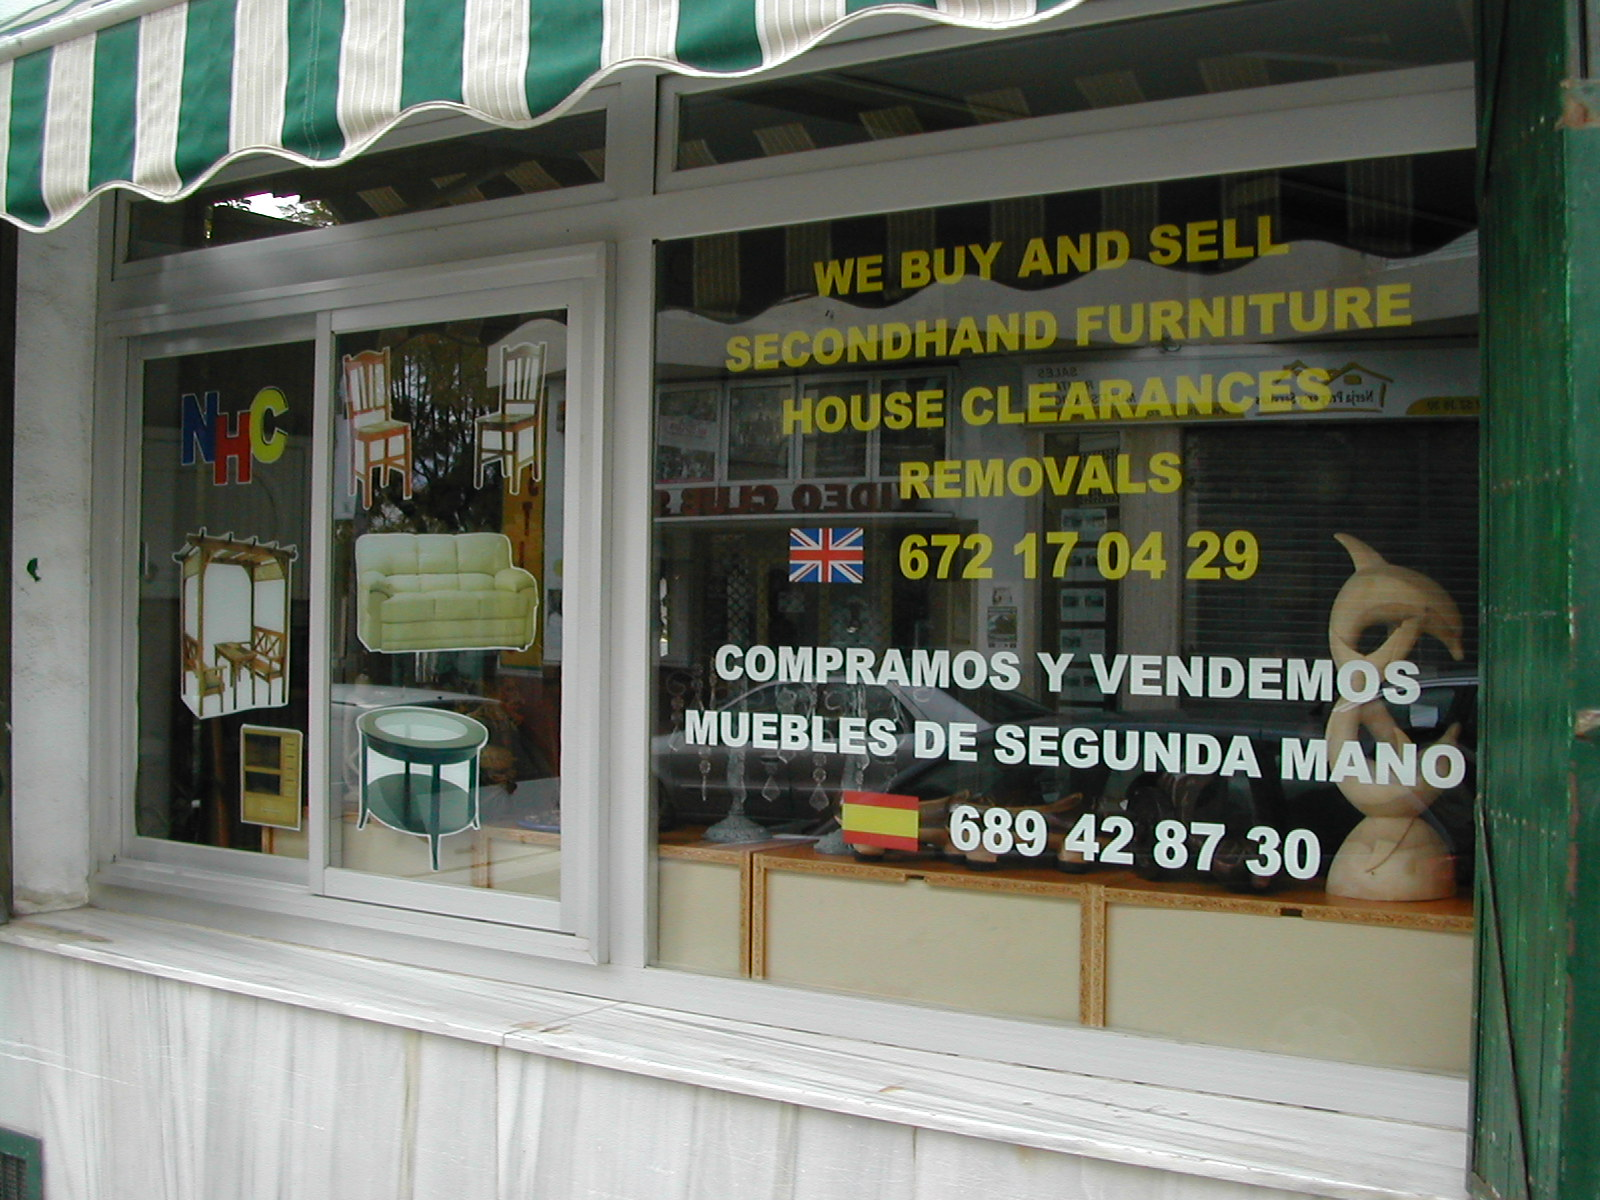 The Second Hand Furniture Shop in Nerja